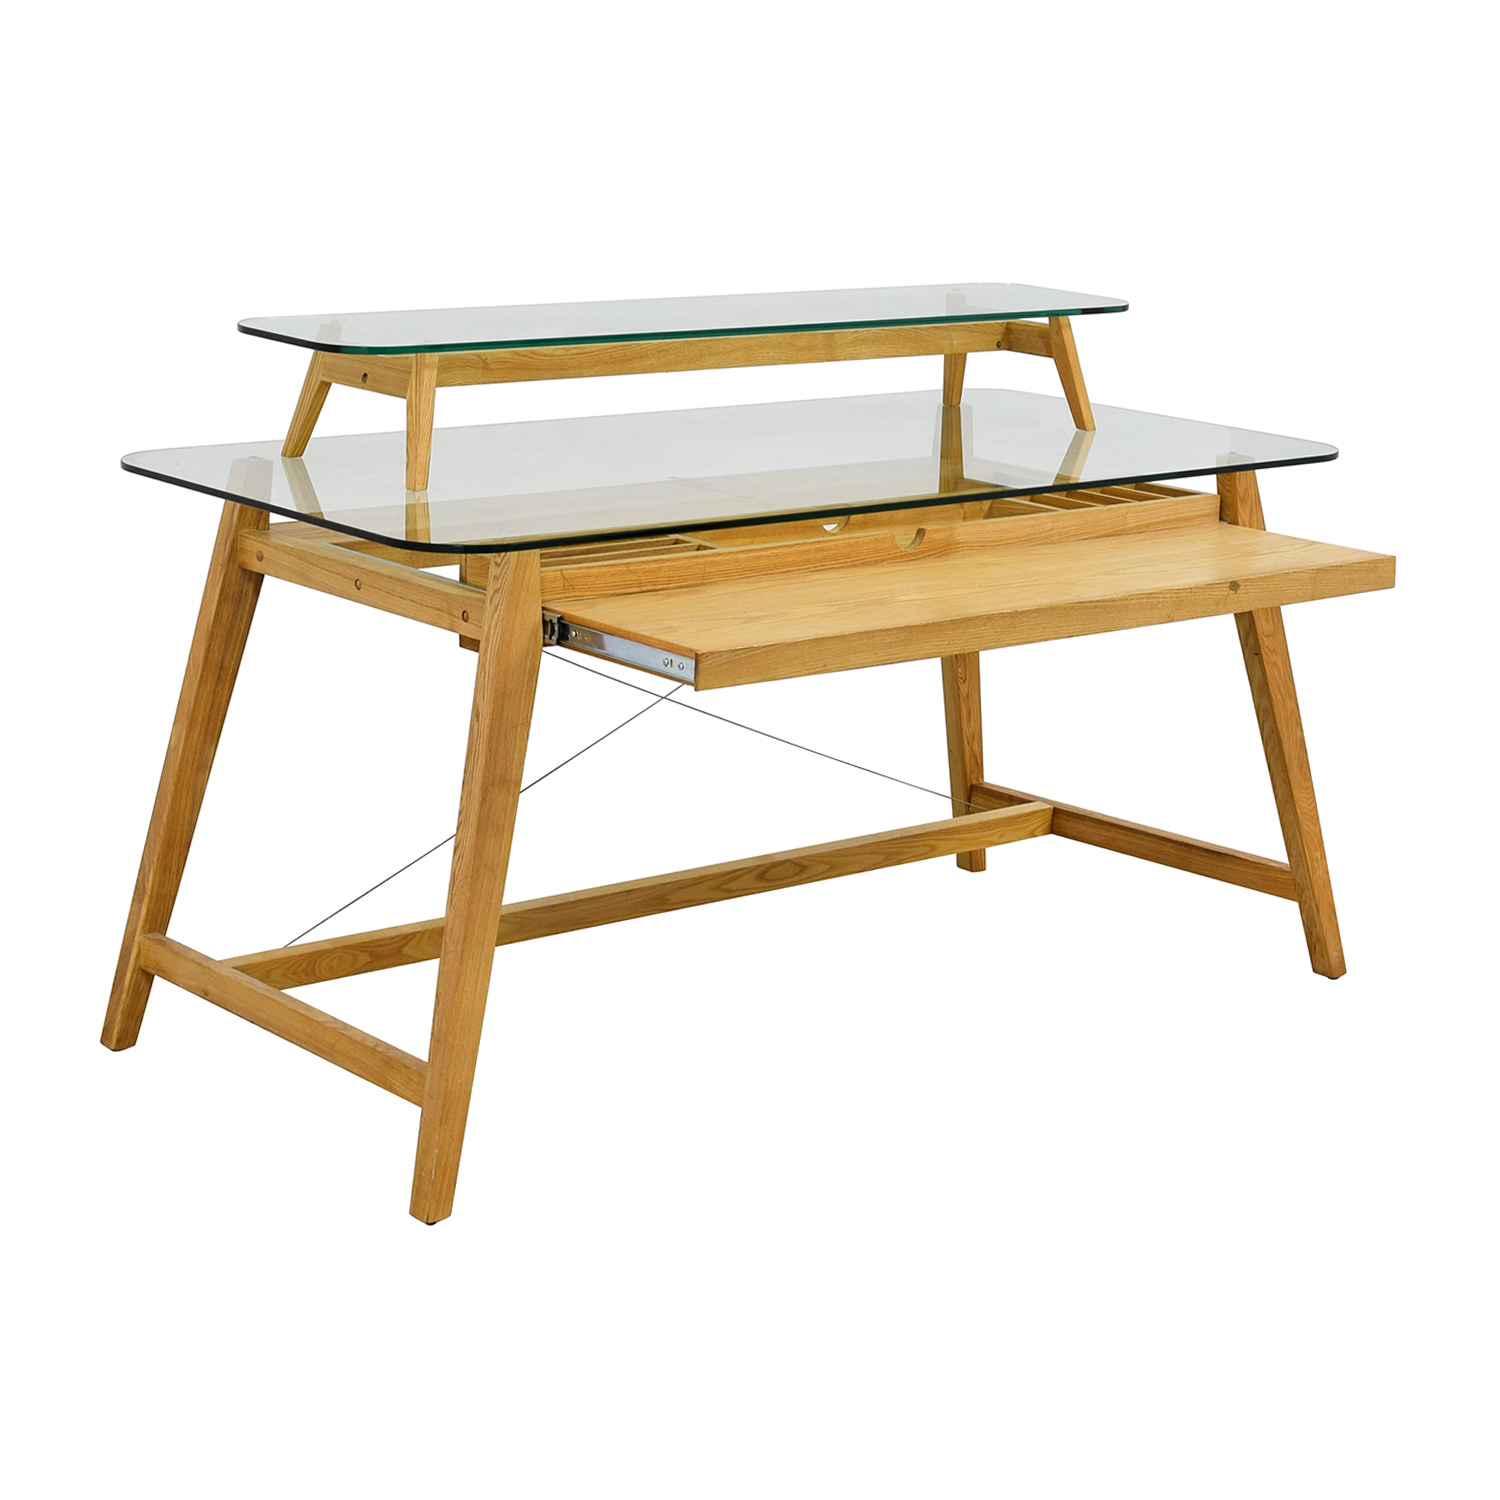 AG Merch AG Merch Natural Two-Tiered Desk with Glass Top for sale